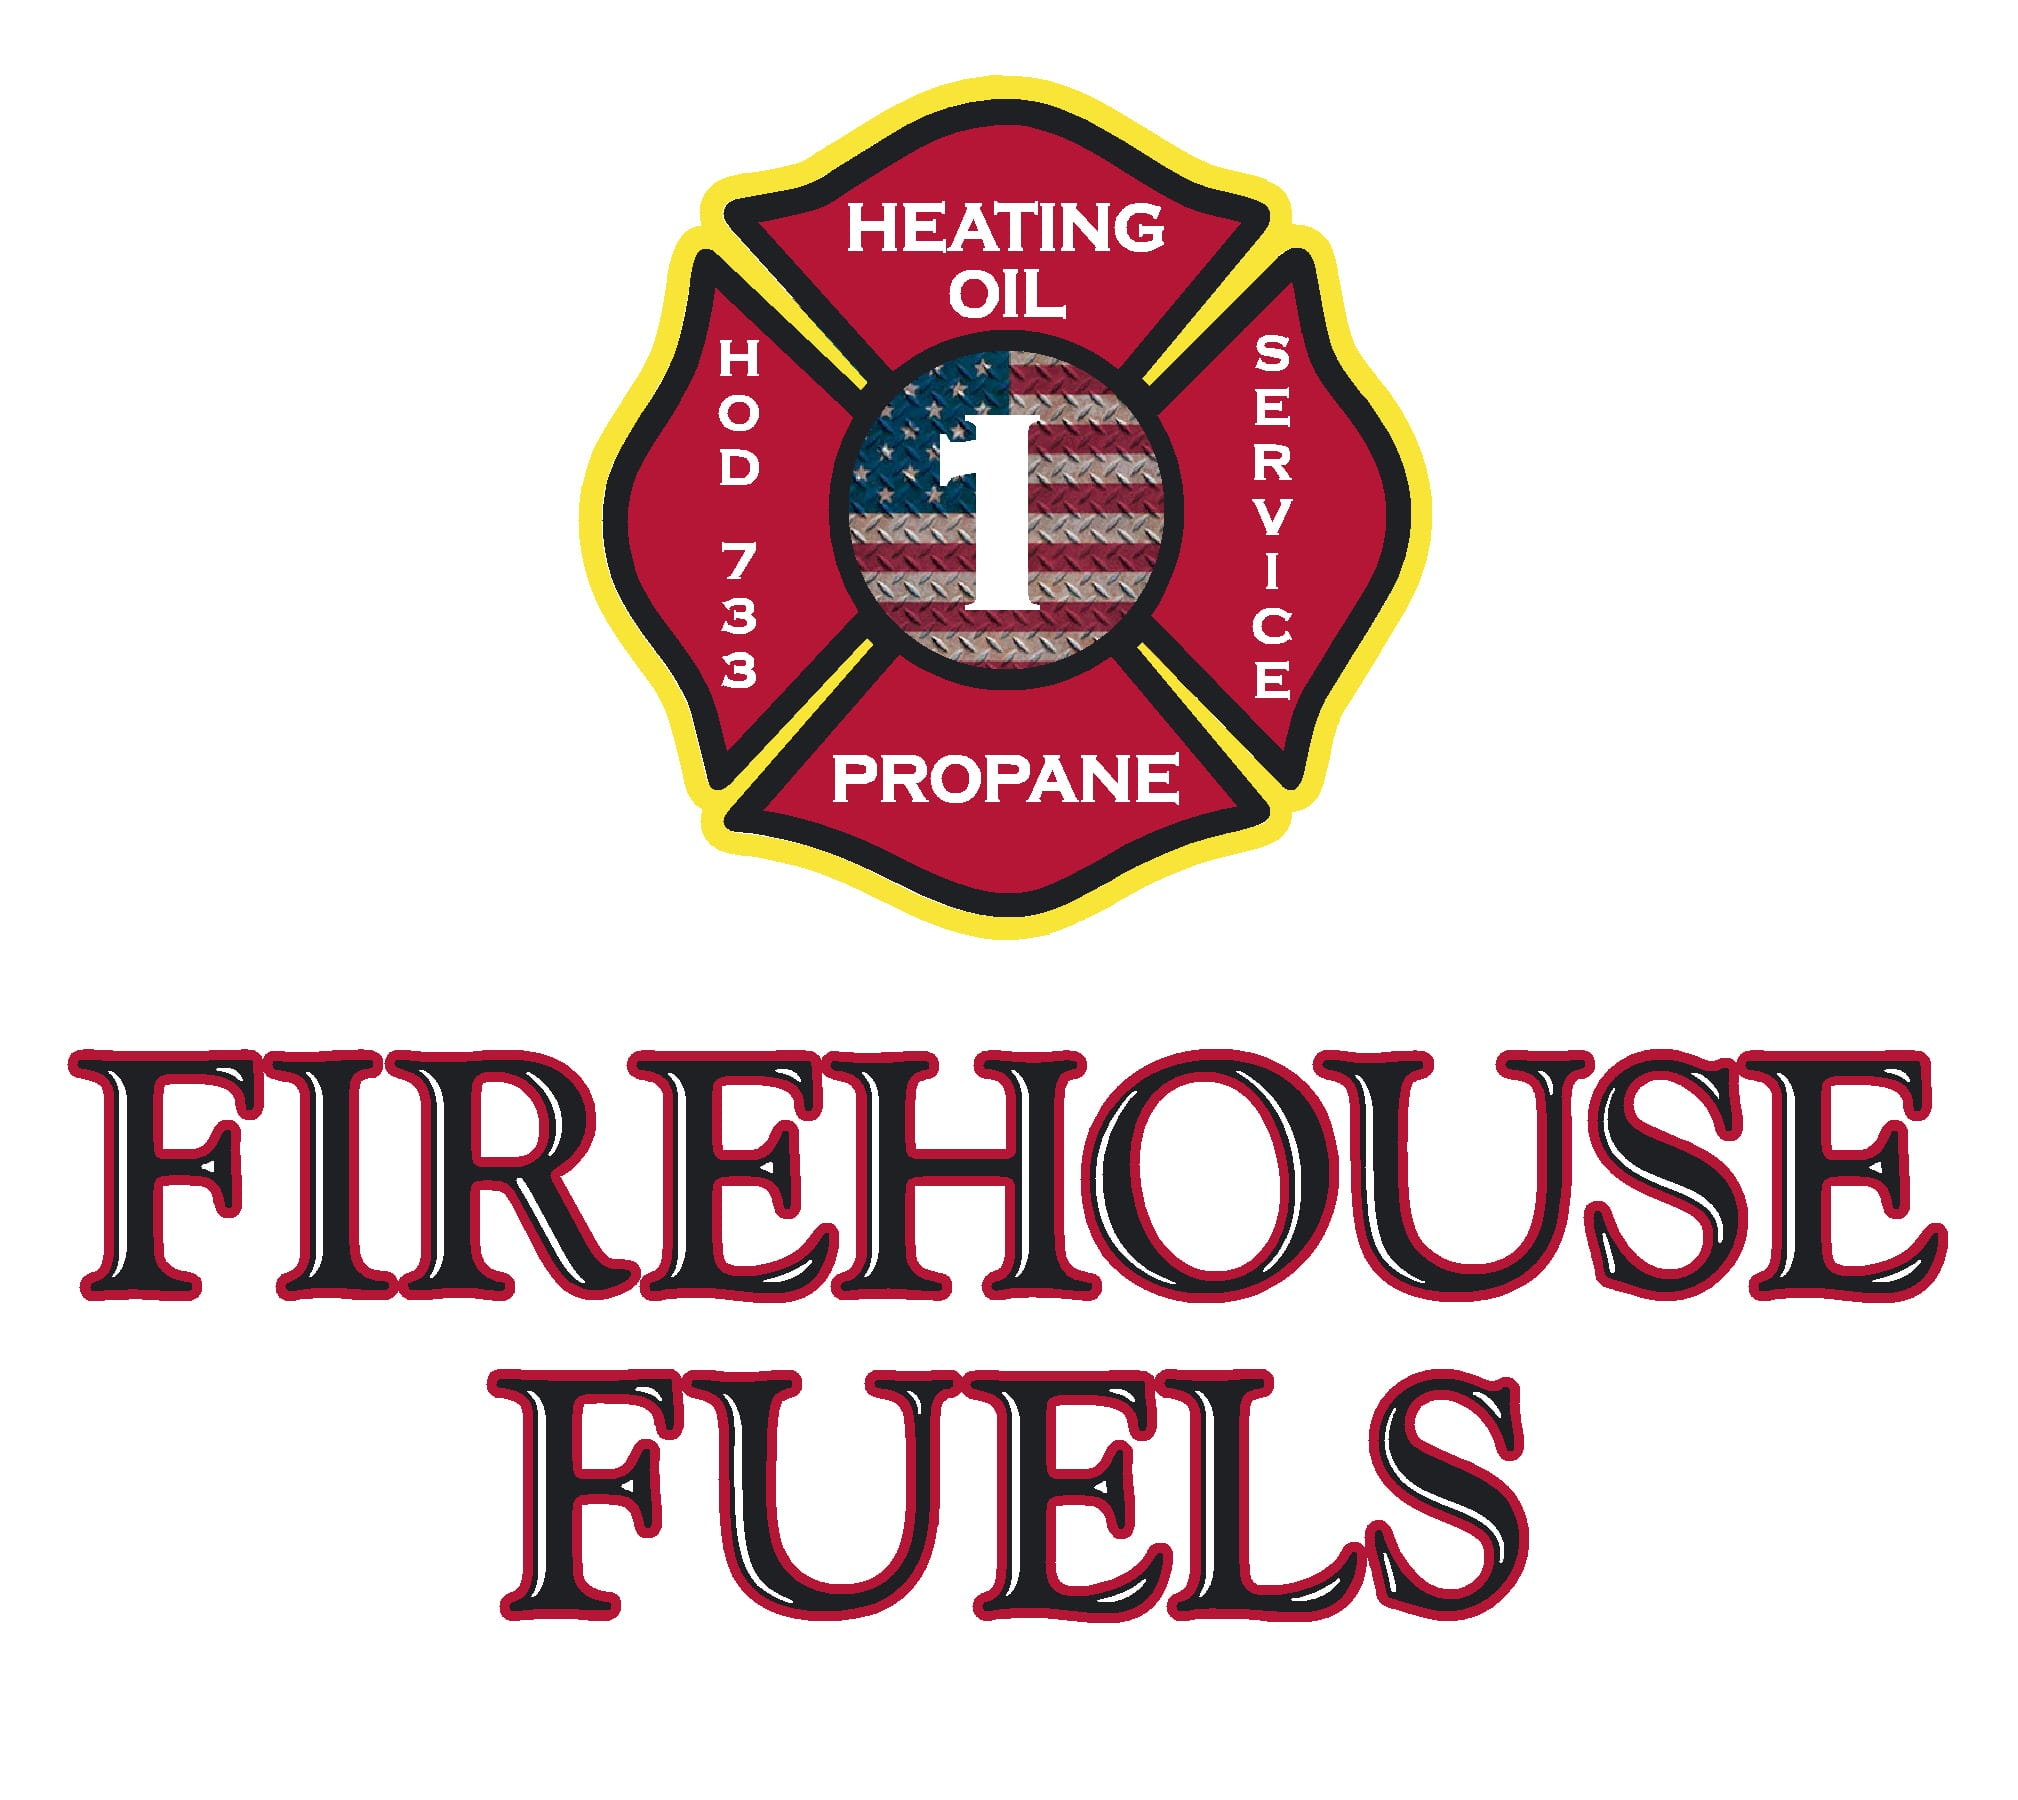 FIREHOUSE_FUELS_LOGO